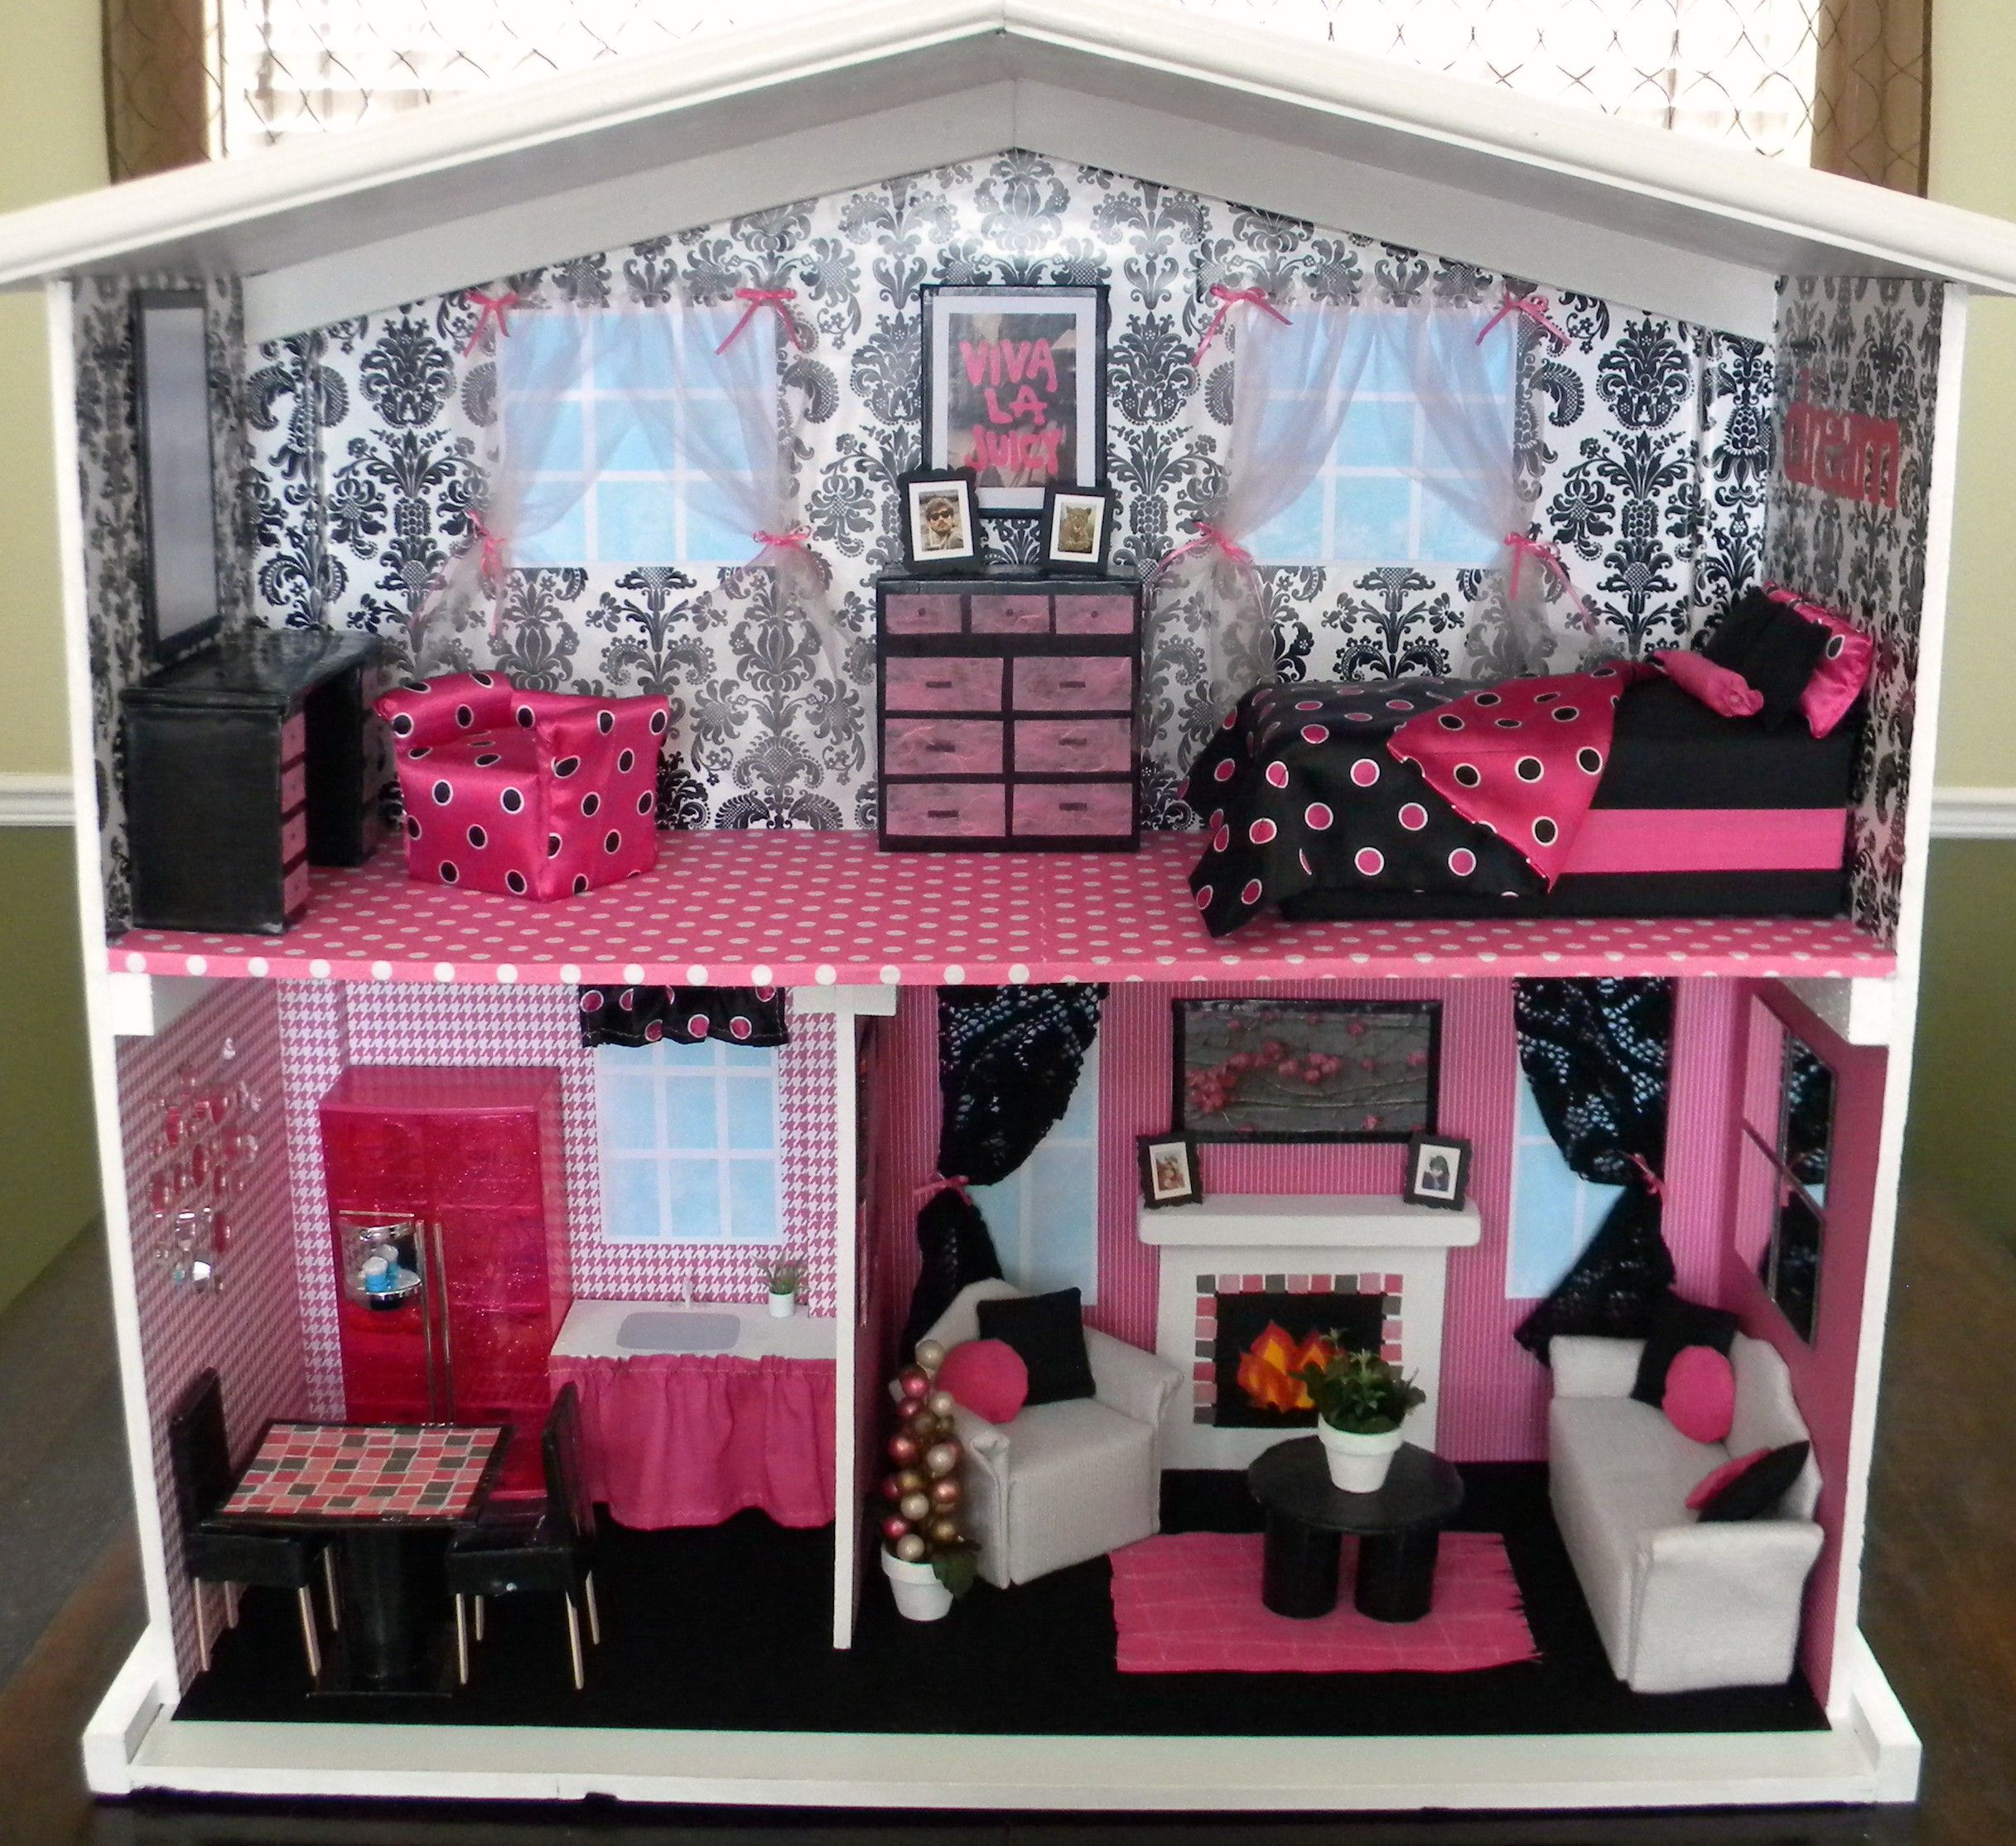 Barbie doll house furniture - The 7 Reasons Why You Need Furniture For Your Barbie Dolls